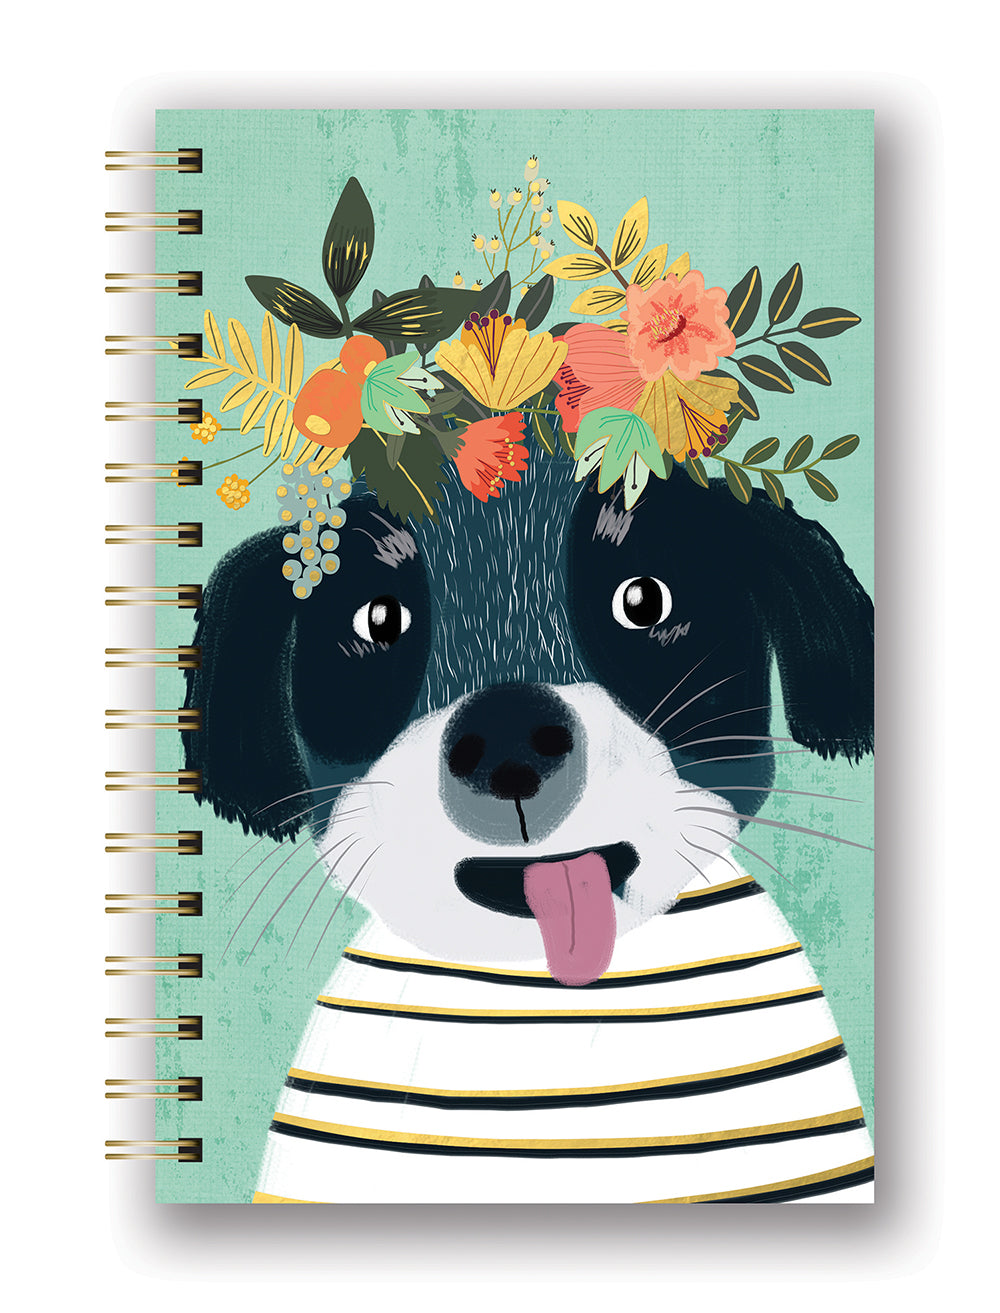 Fancy Dog Spiral Journal | Studio Oh!